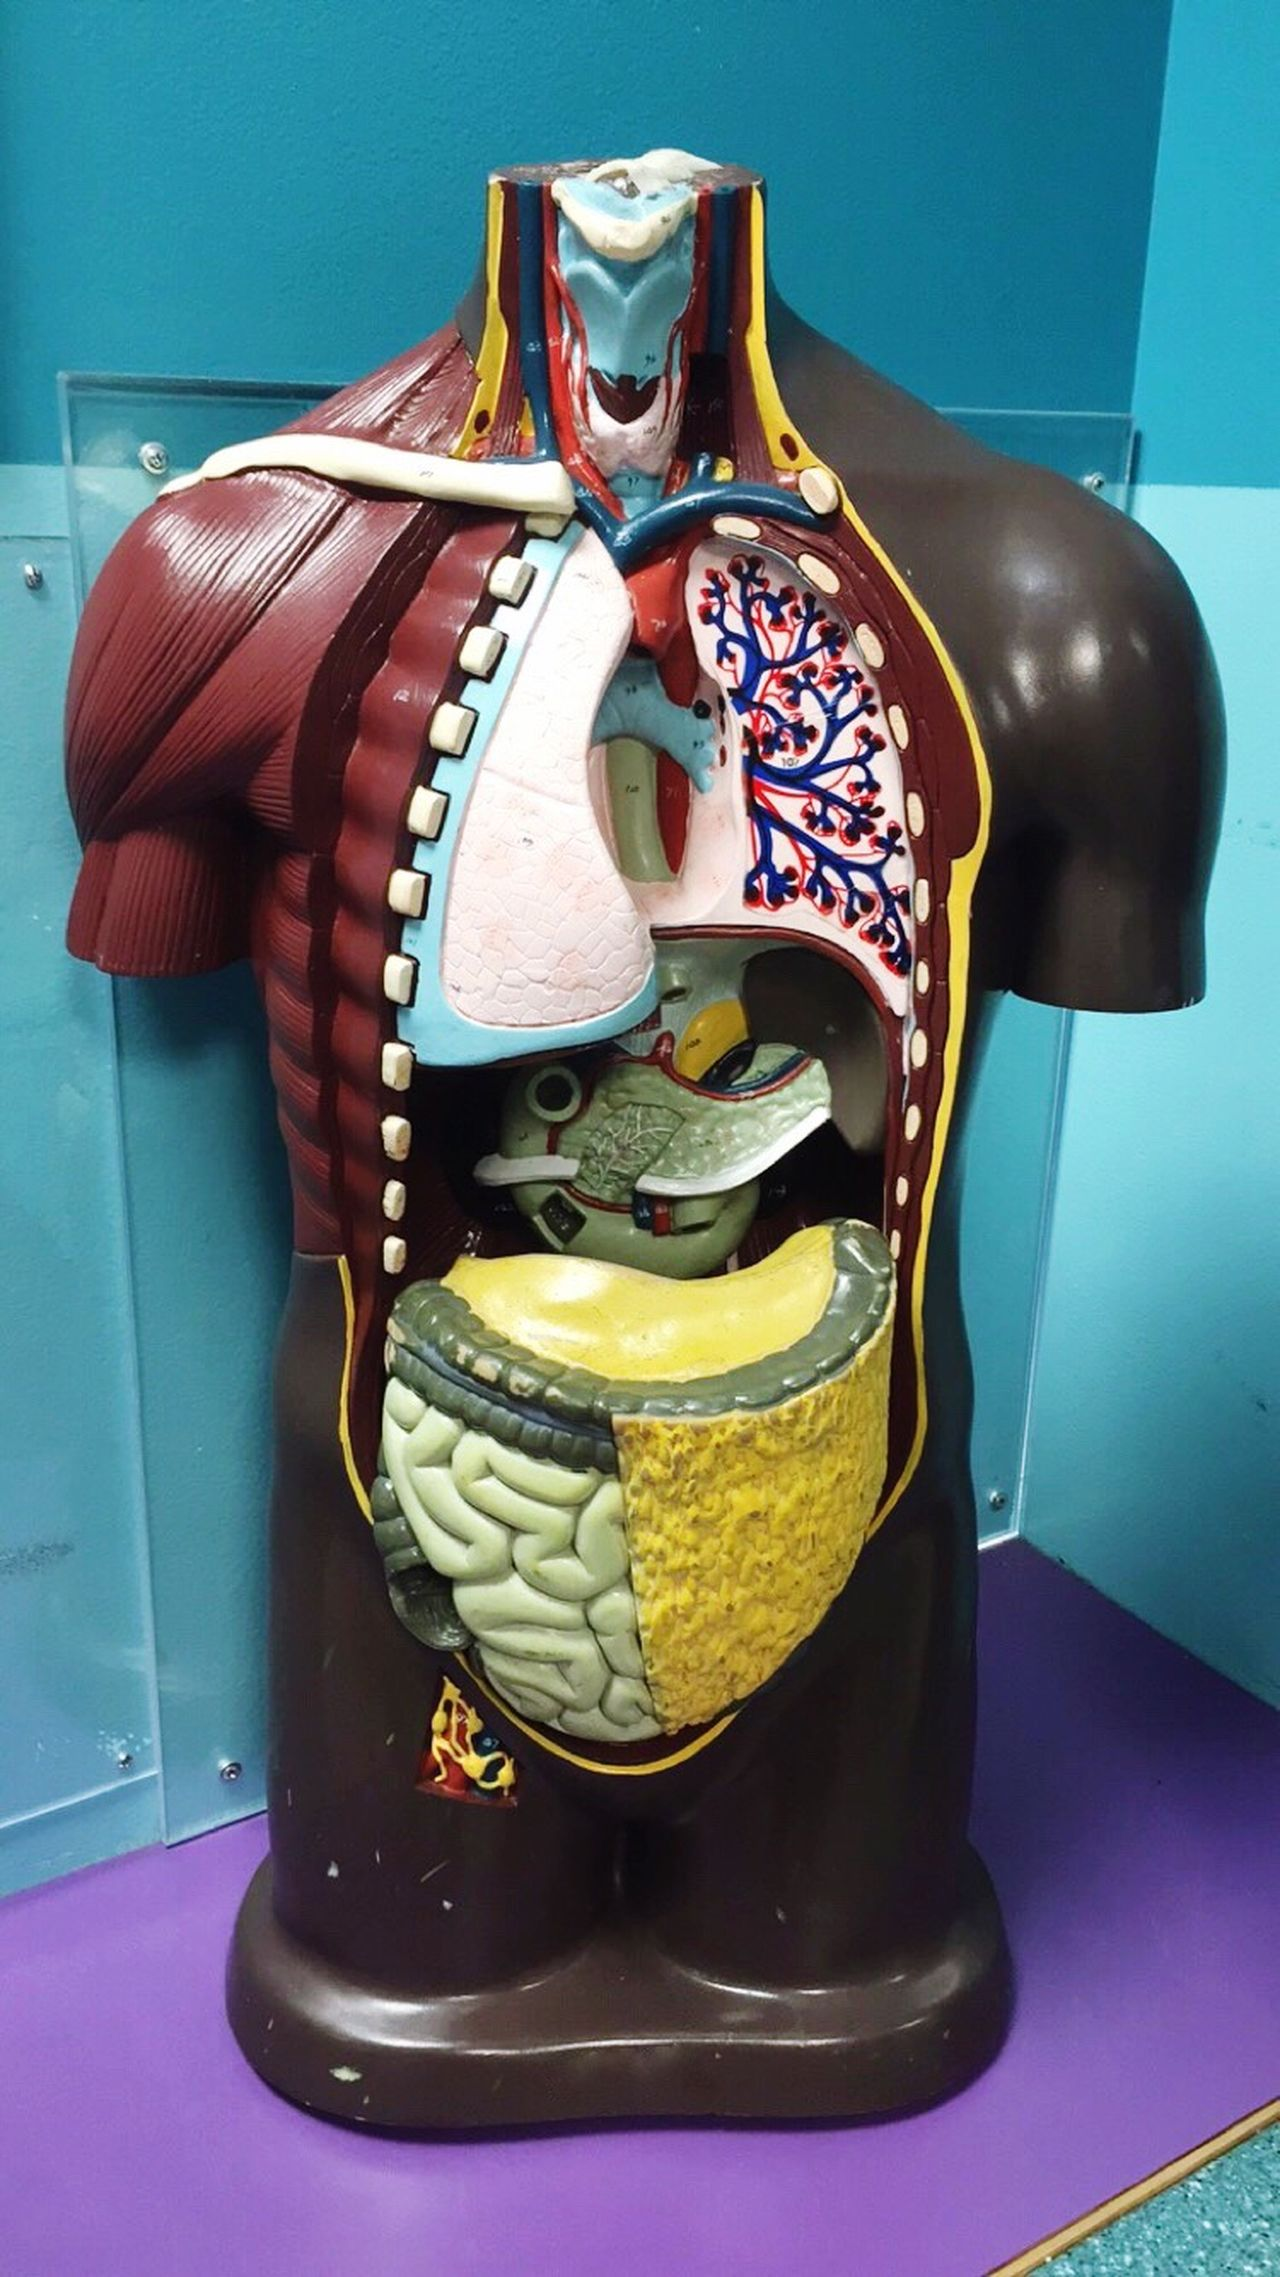 Organs Science Health Biology Biology Class Medical Close-up Disection Organ Donation Intestines Education Lungs Body Anatomy Anatomy Class Human Body Medical Body Medical School Medical Study